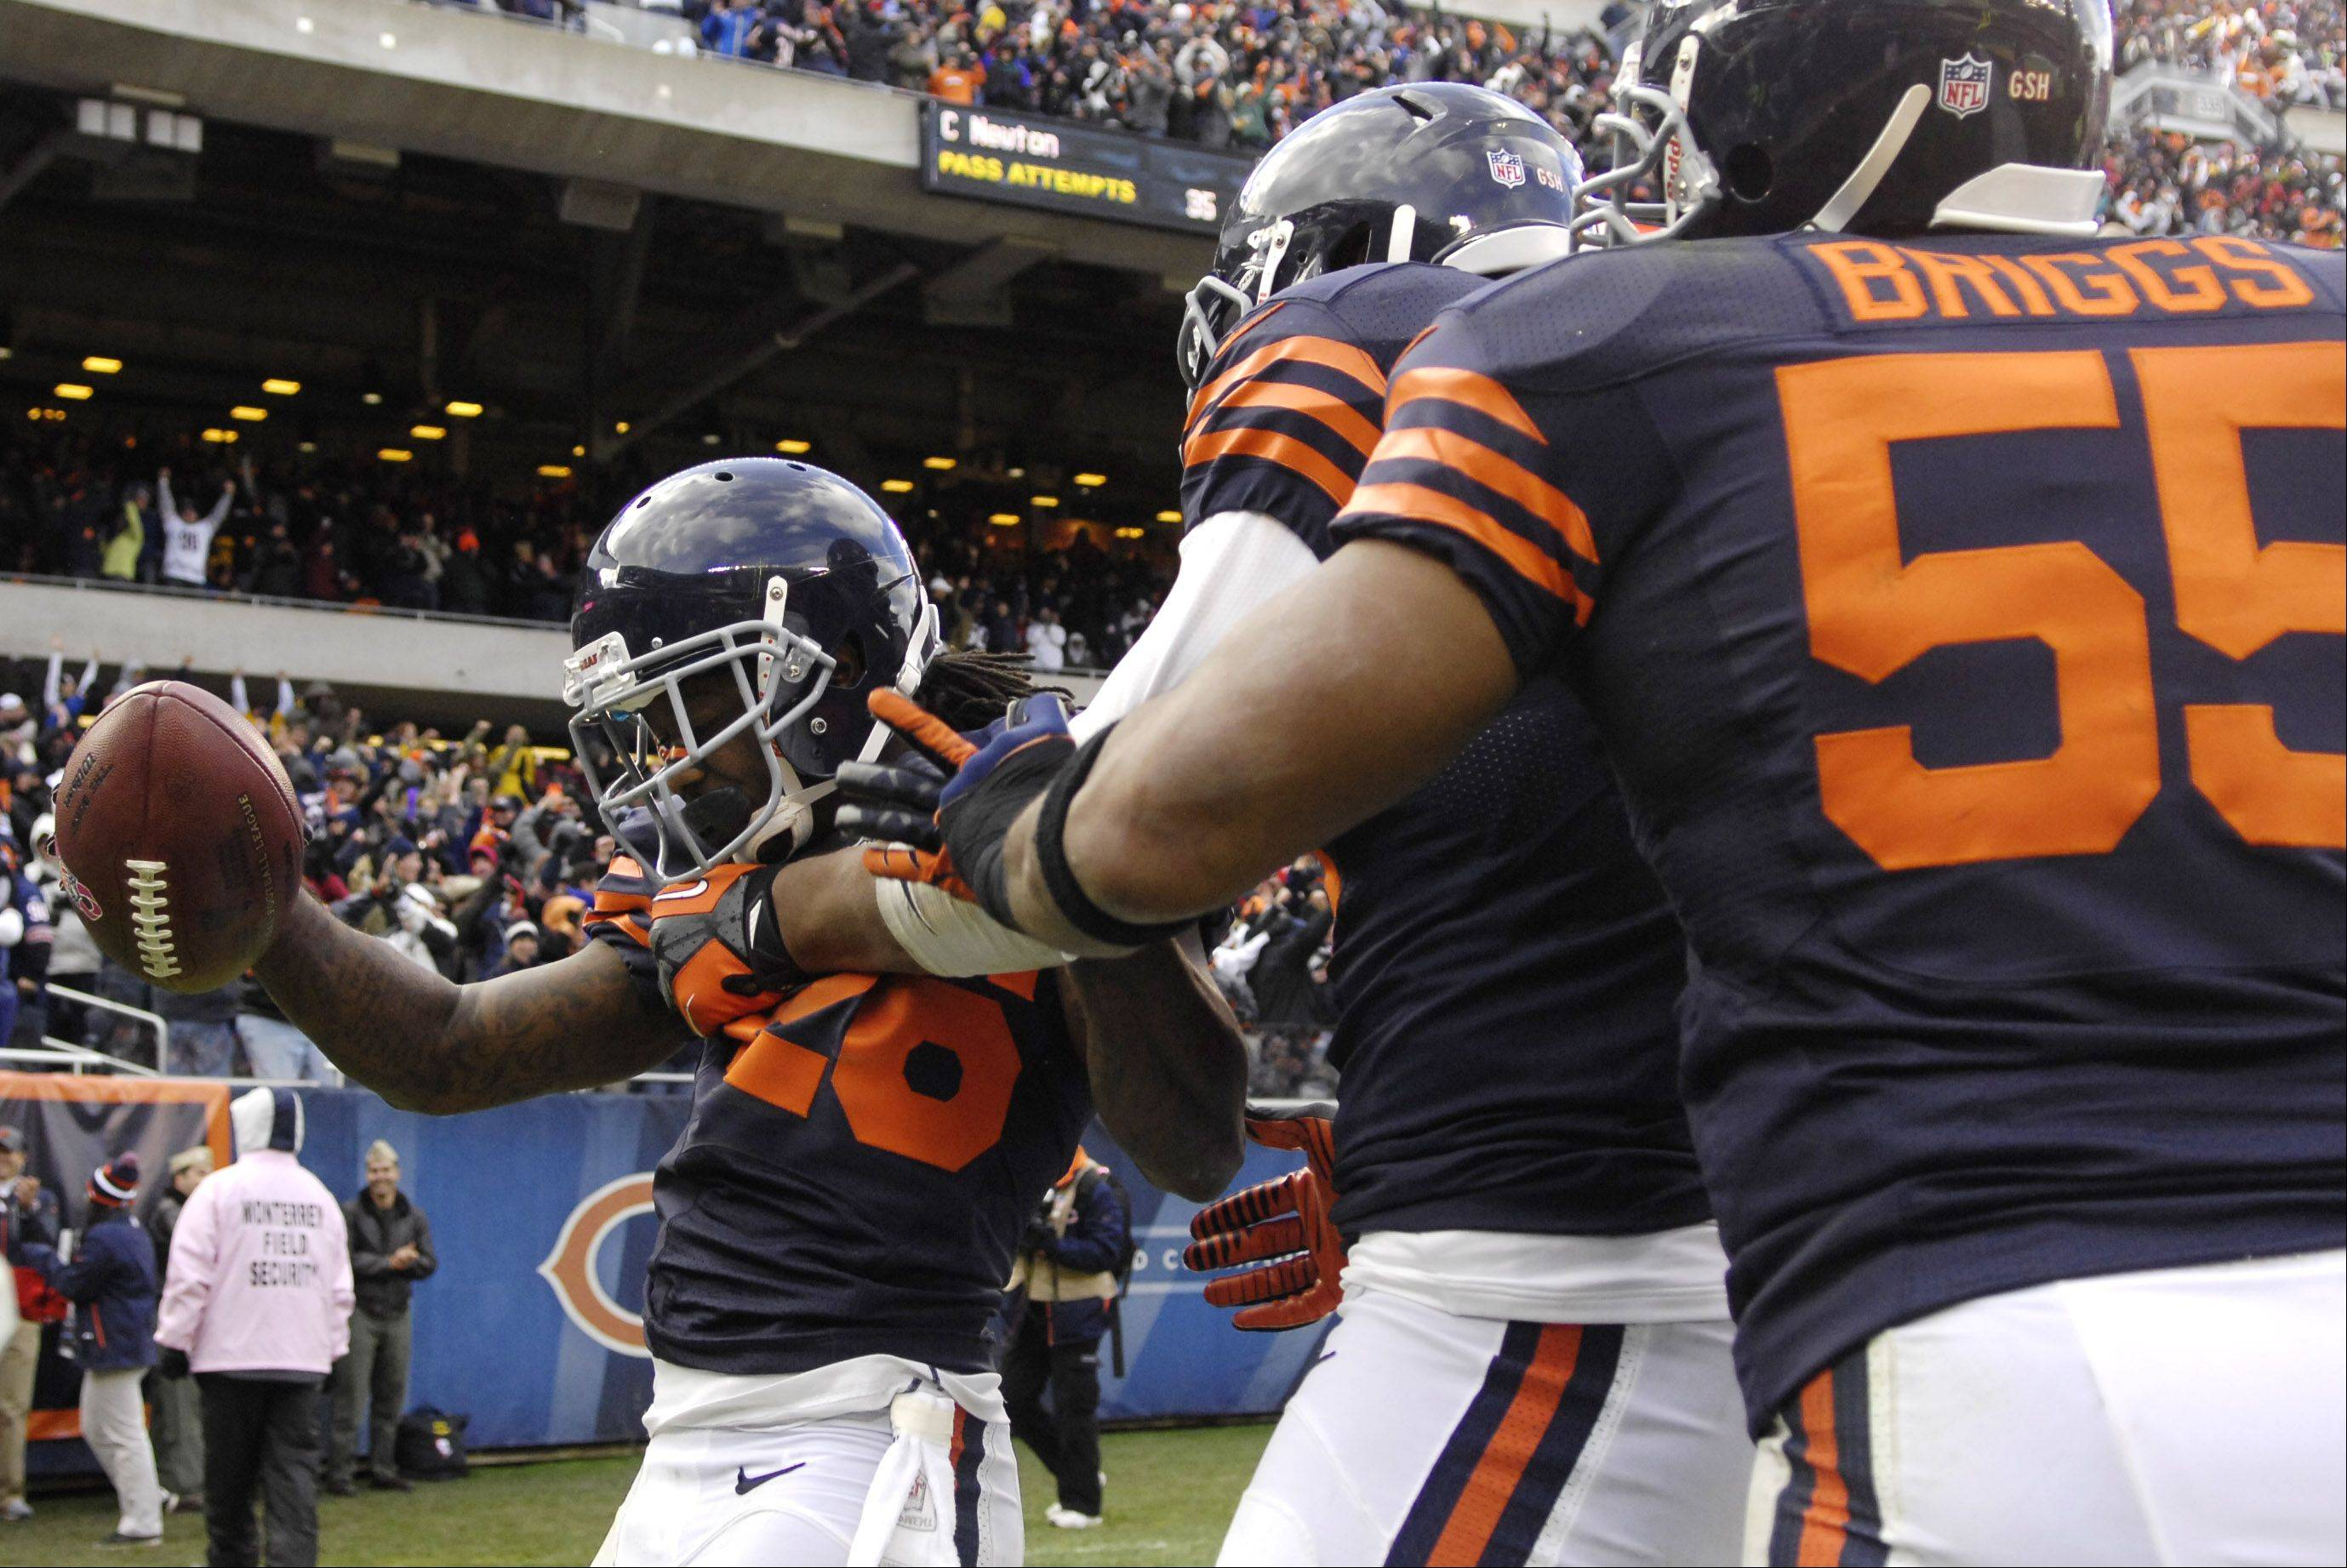 Chicago Bears cornerback Tim Jennings (26) is swarmed by teammates after his fourth-quarter interception return for a touchdown during Sunday's game against Carolina at Soldier Field in Chicago.